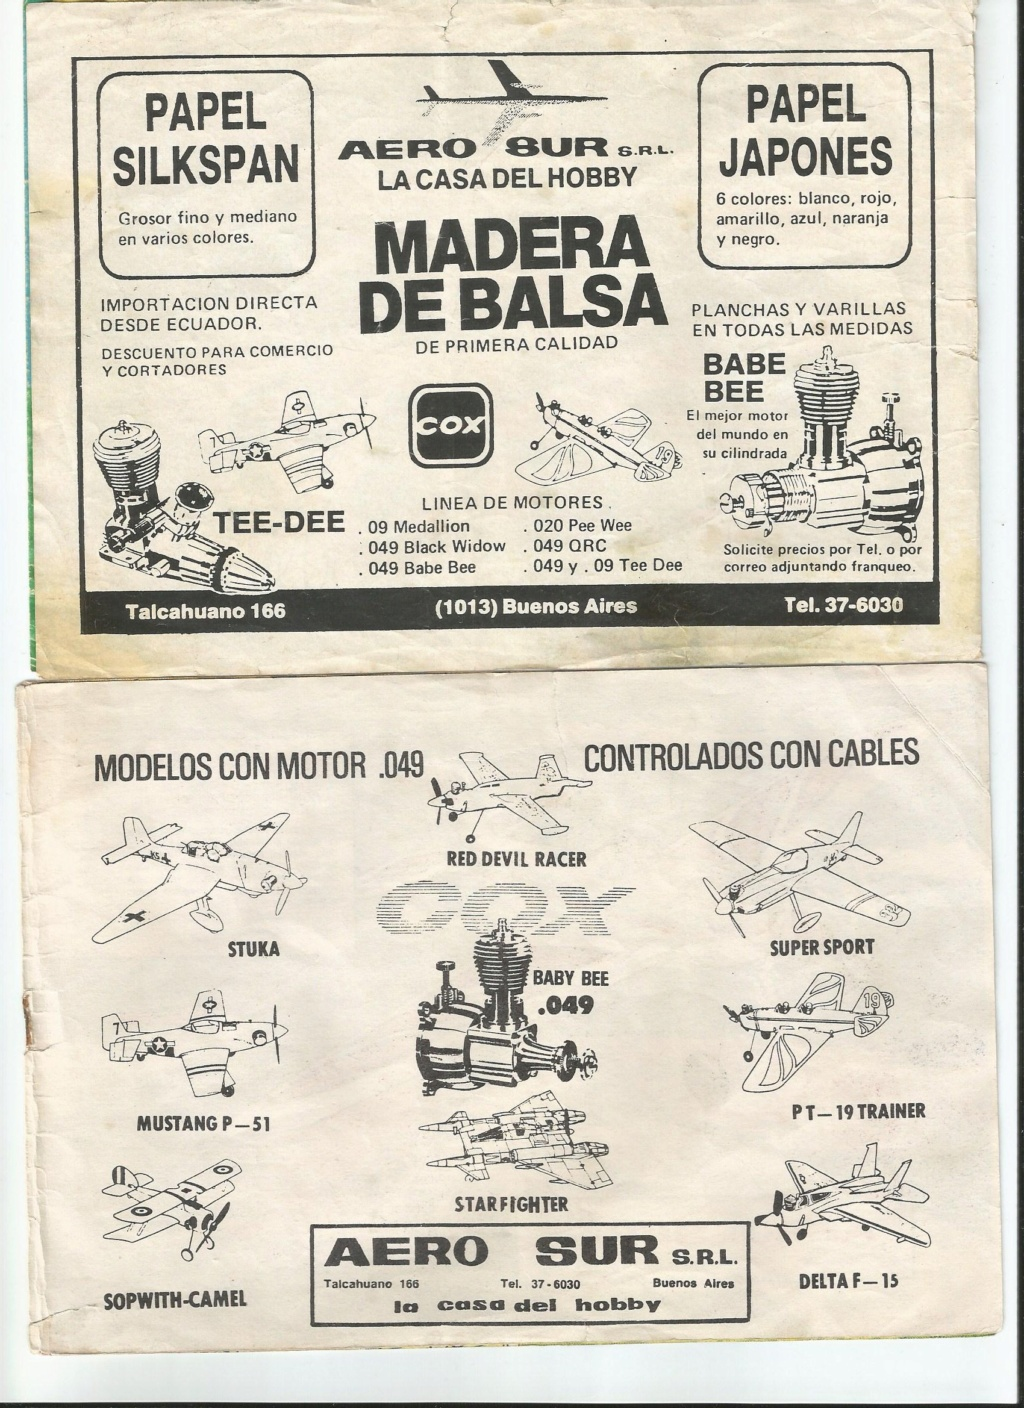 History of Cox in Argentina. Scan0010